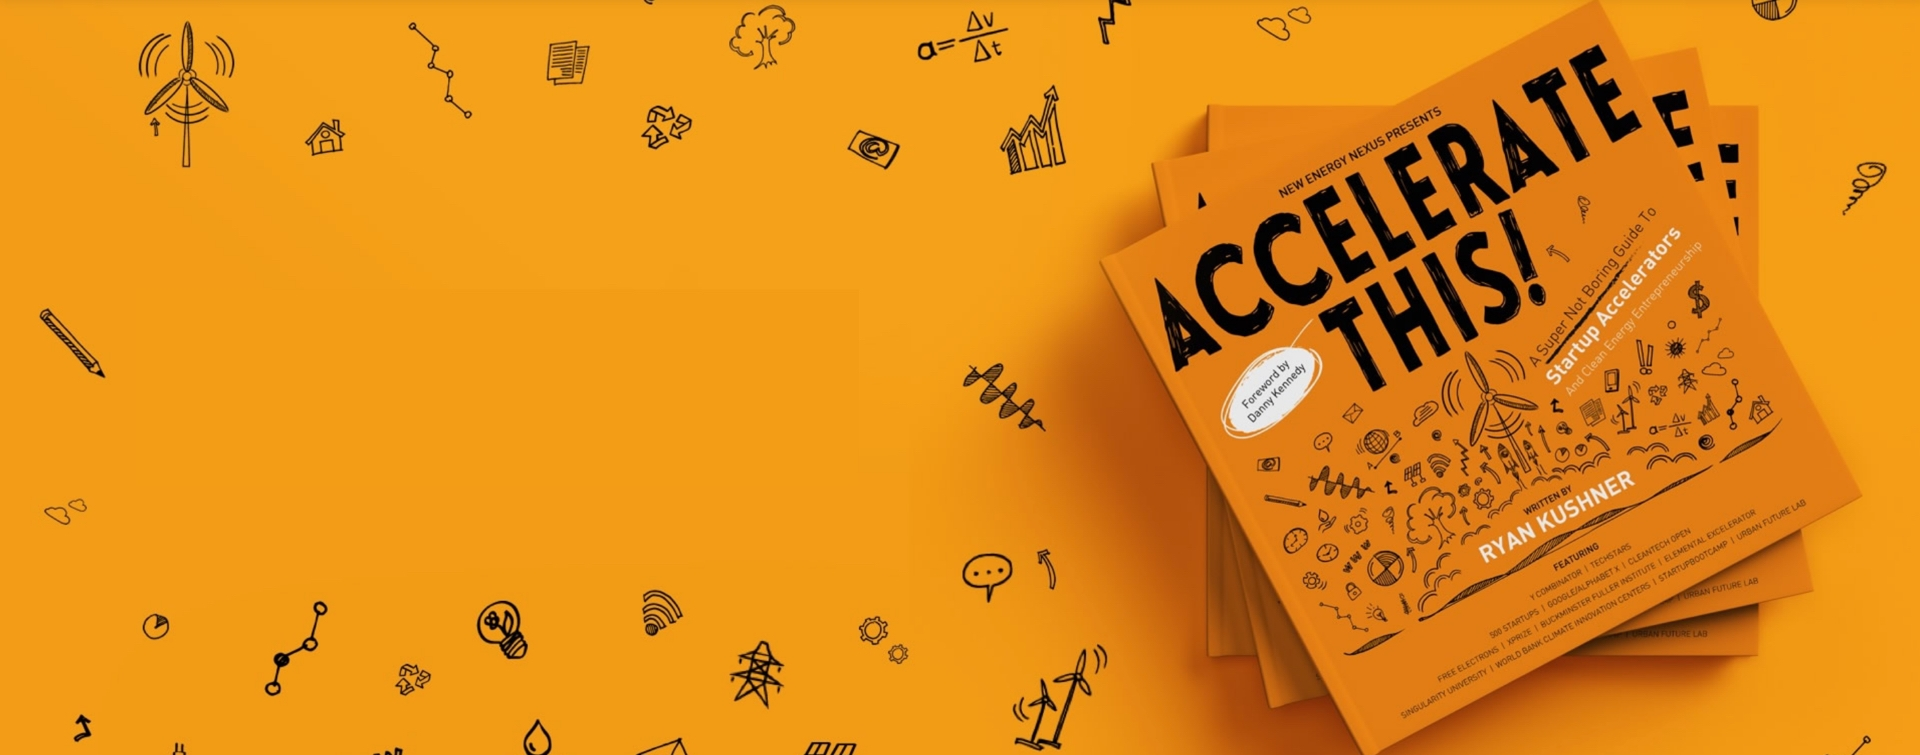 Accelerate This! - A Super Not Boring Guide ToStartup Accelerators And Clean EnergyEntrepreneurship